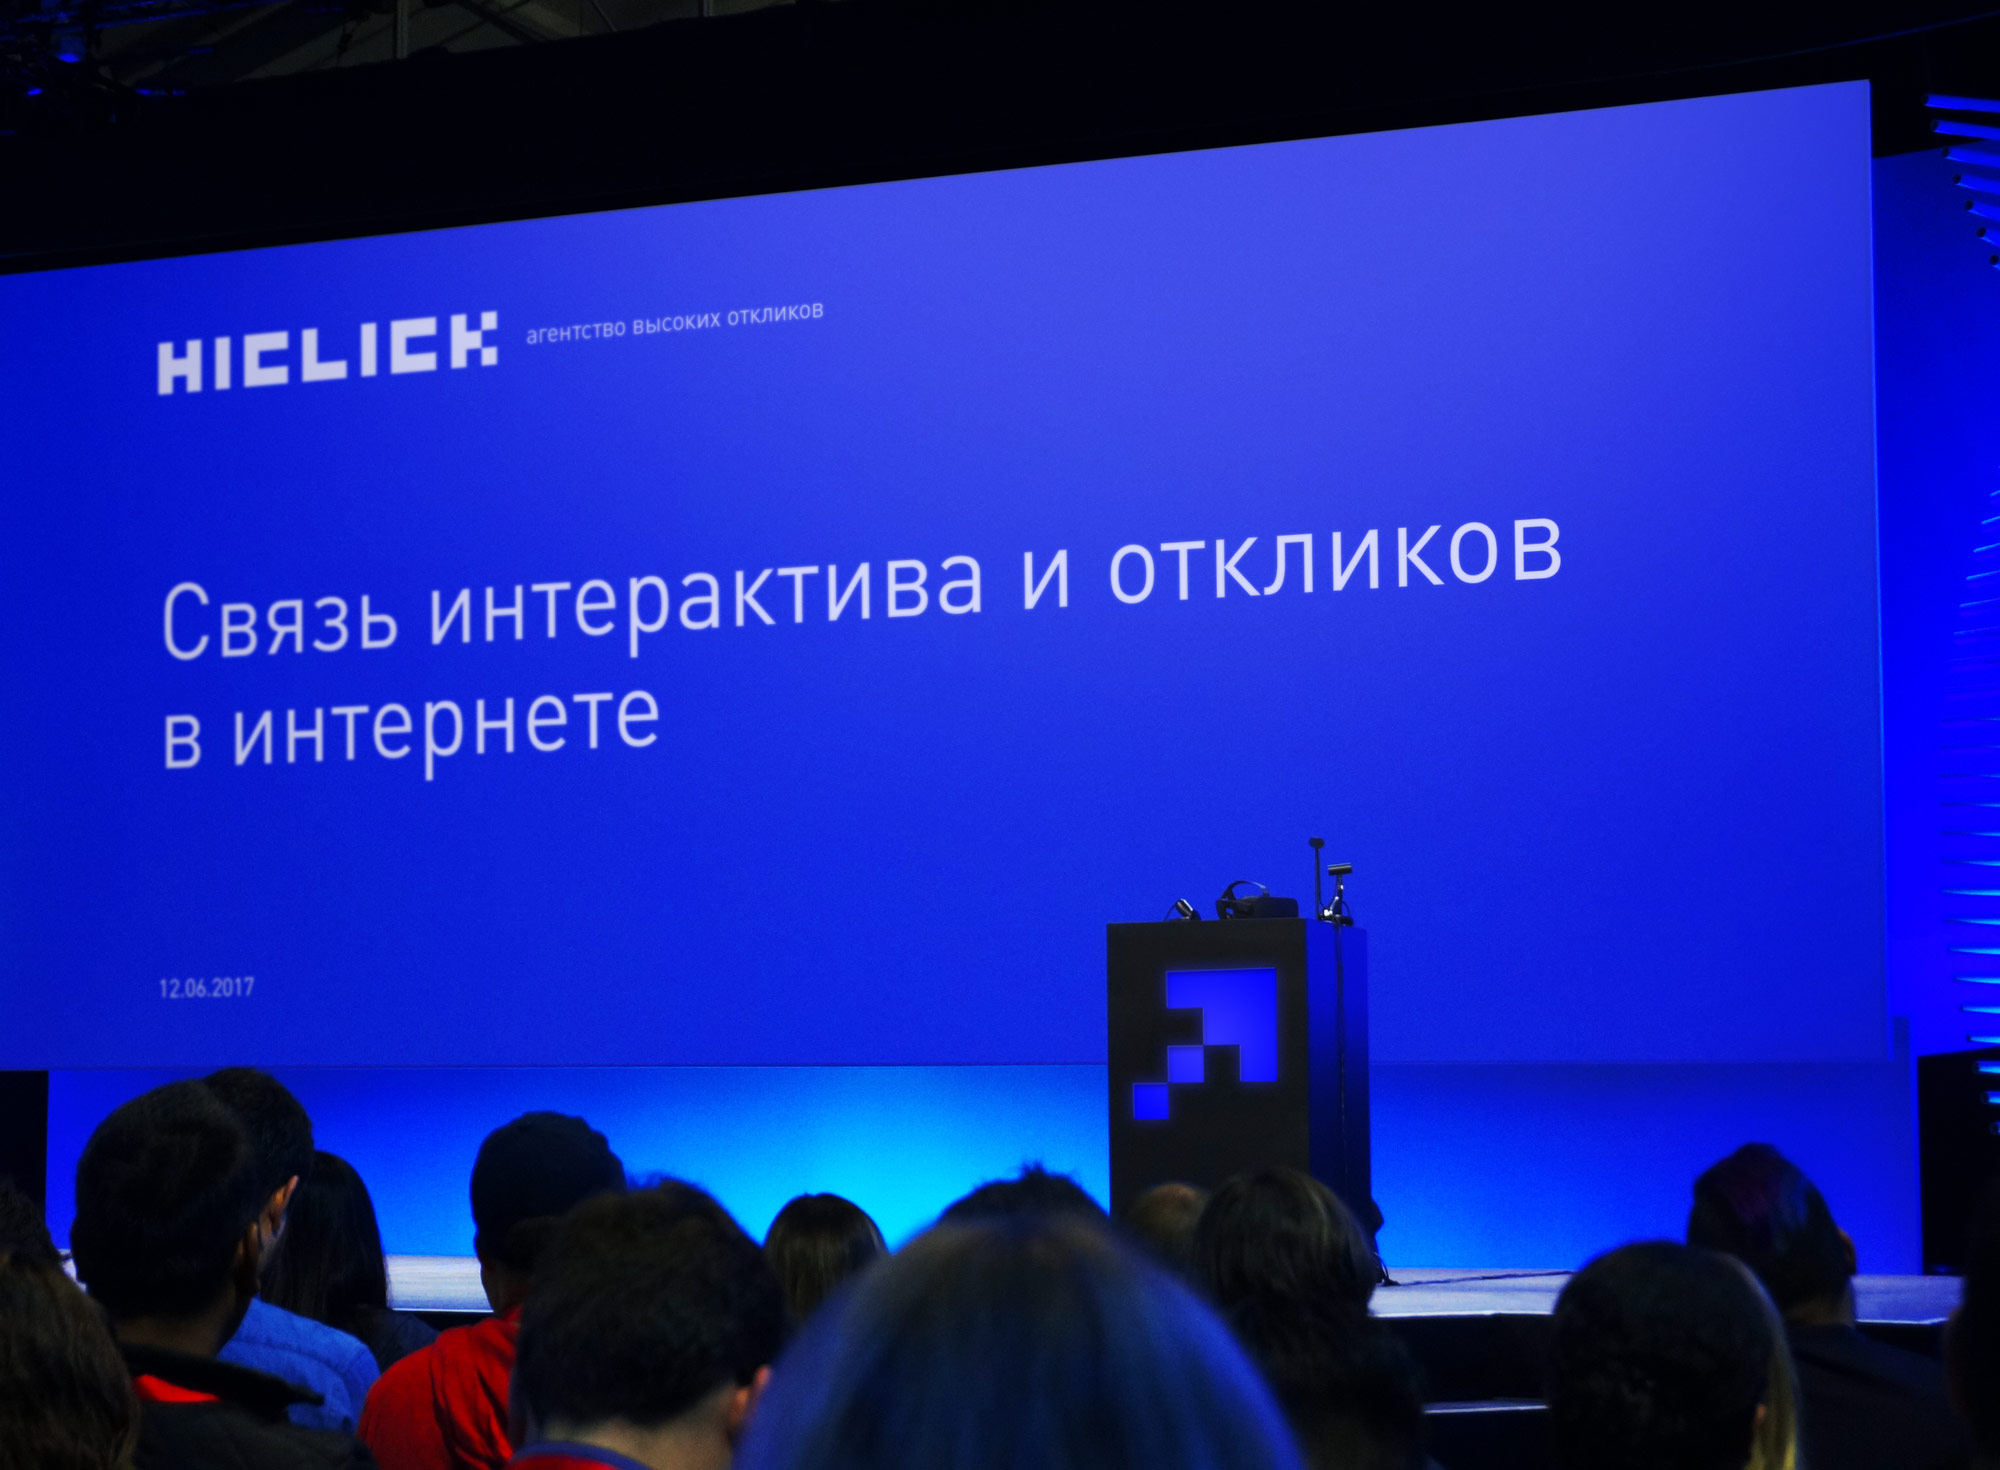 hiclick_conference1.jpg